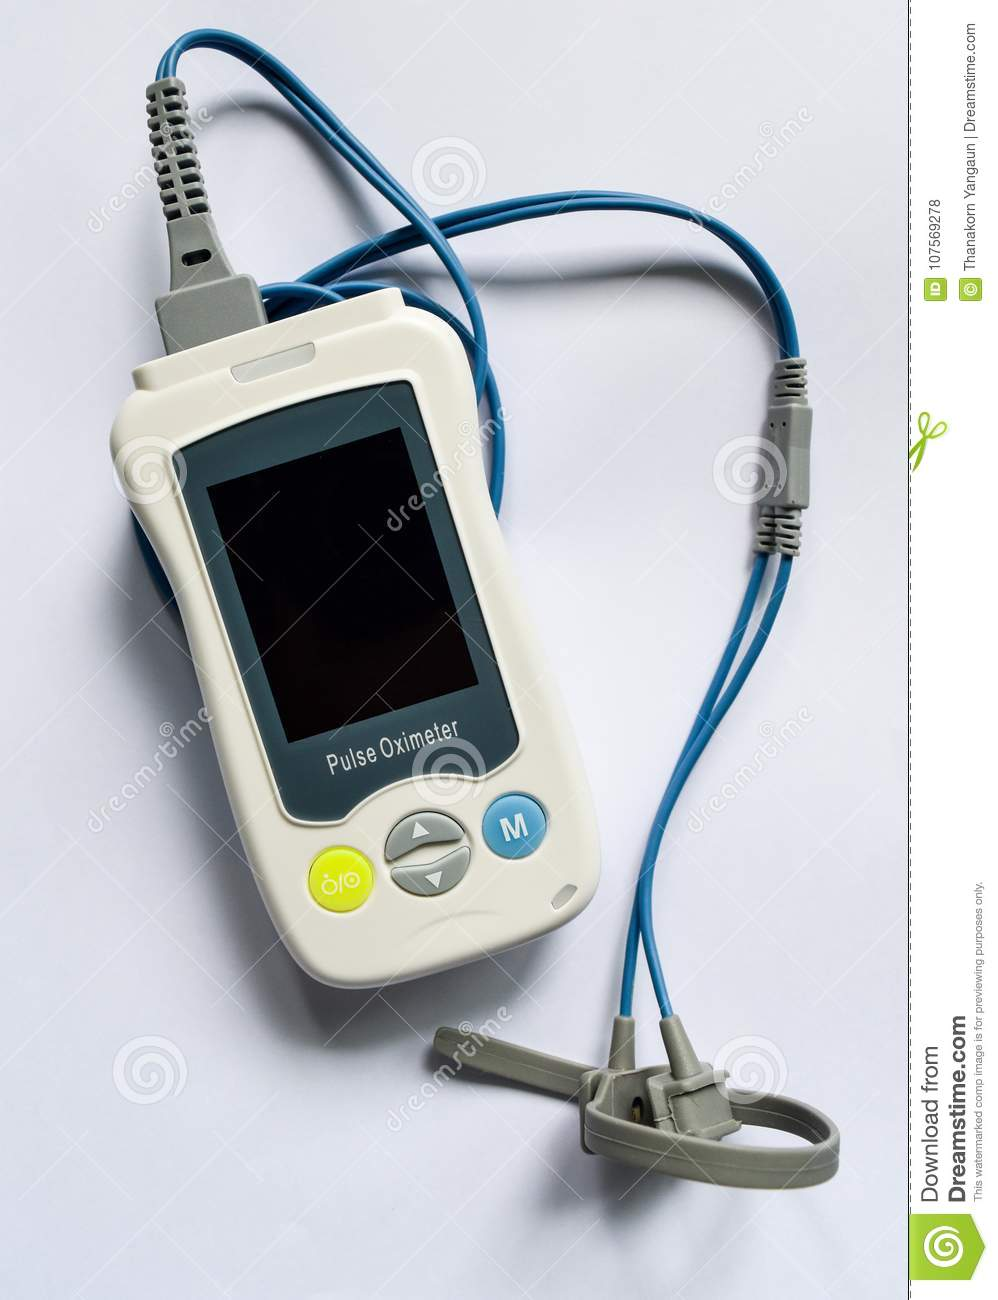 Pulse Oximeter, Medical Device Used To Monitor Blood Oxygen